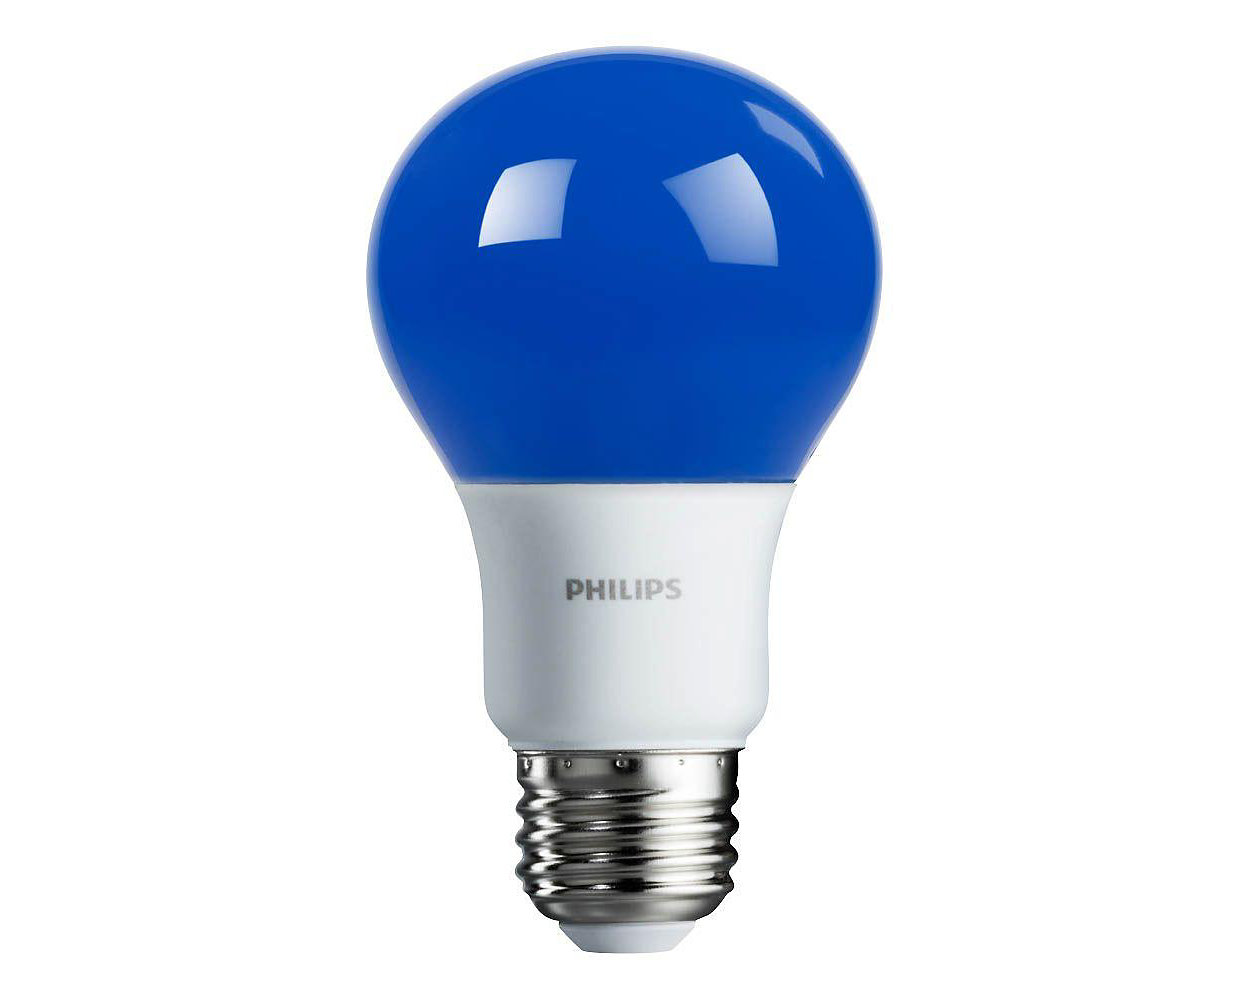 Foco LED de color con luz azul brillante